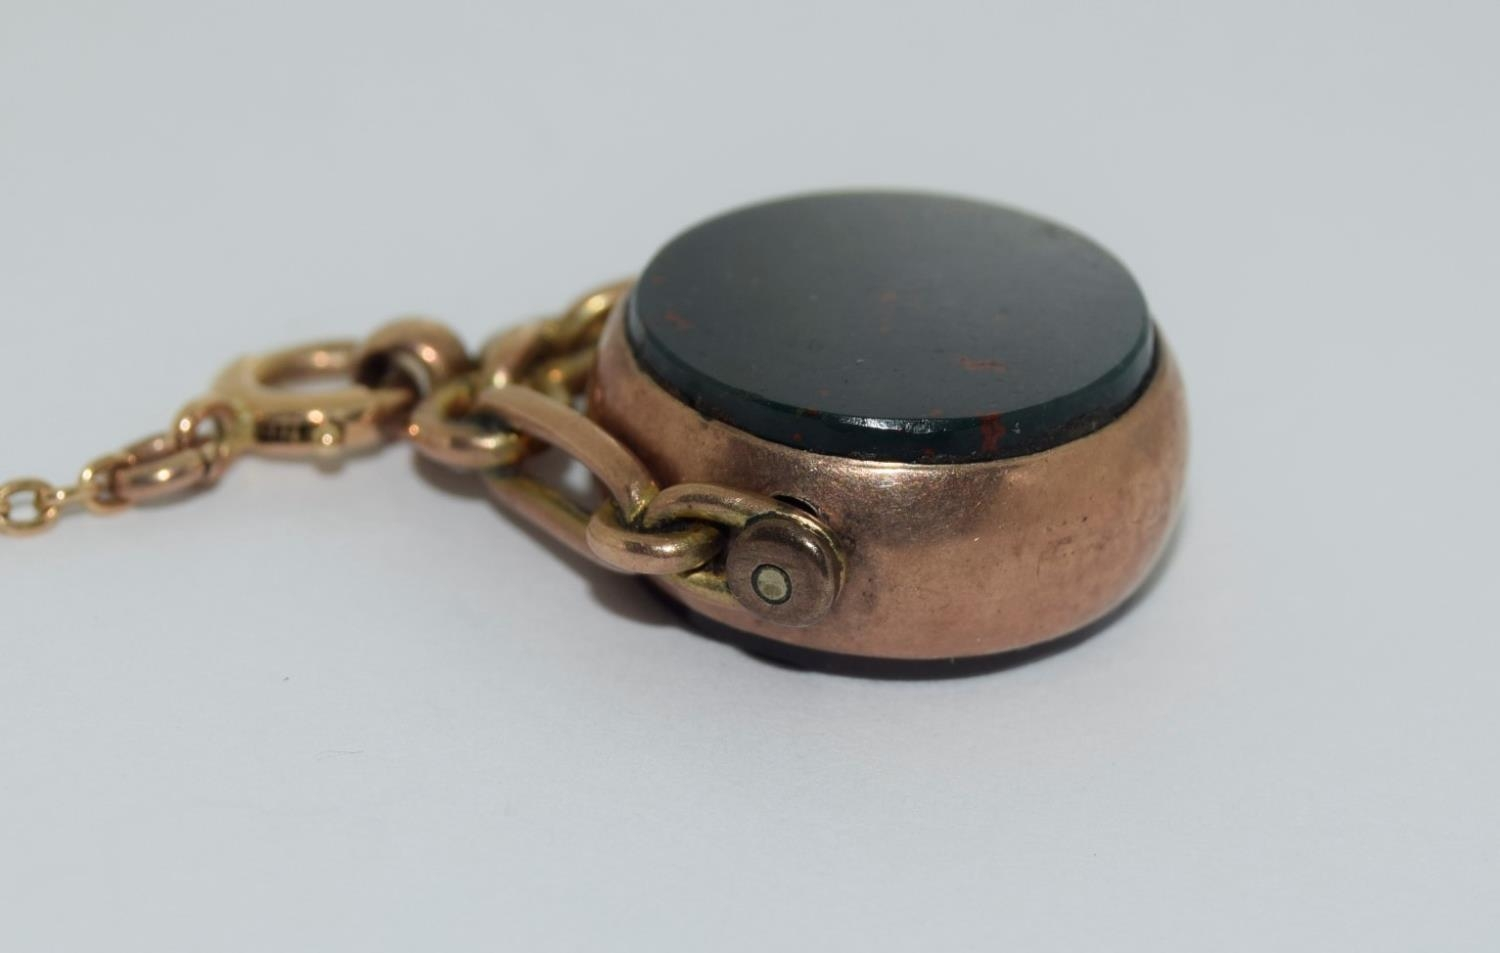 9ct gold ladies watch and strap together an agate watch fob - Image 7 of 9